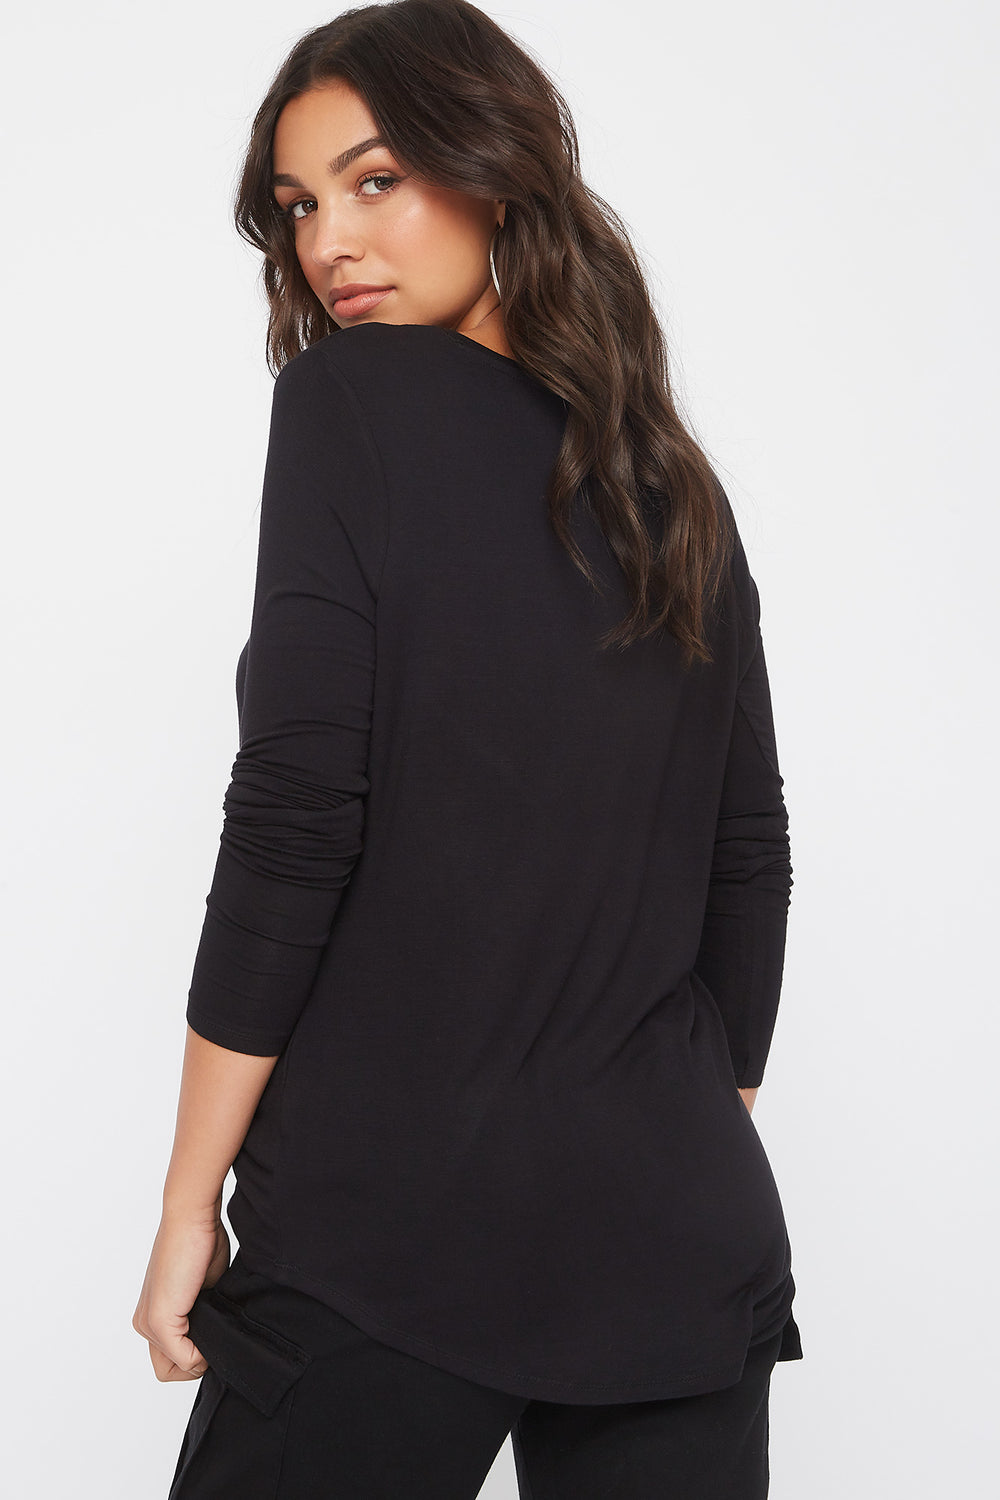 Curve Hem V-Neck Long Sleeve Black